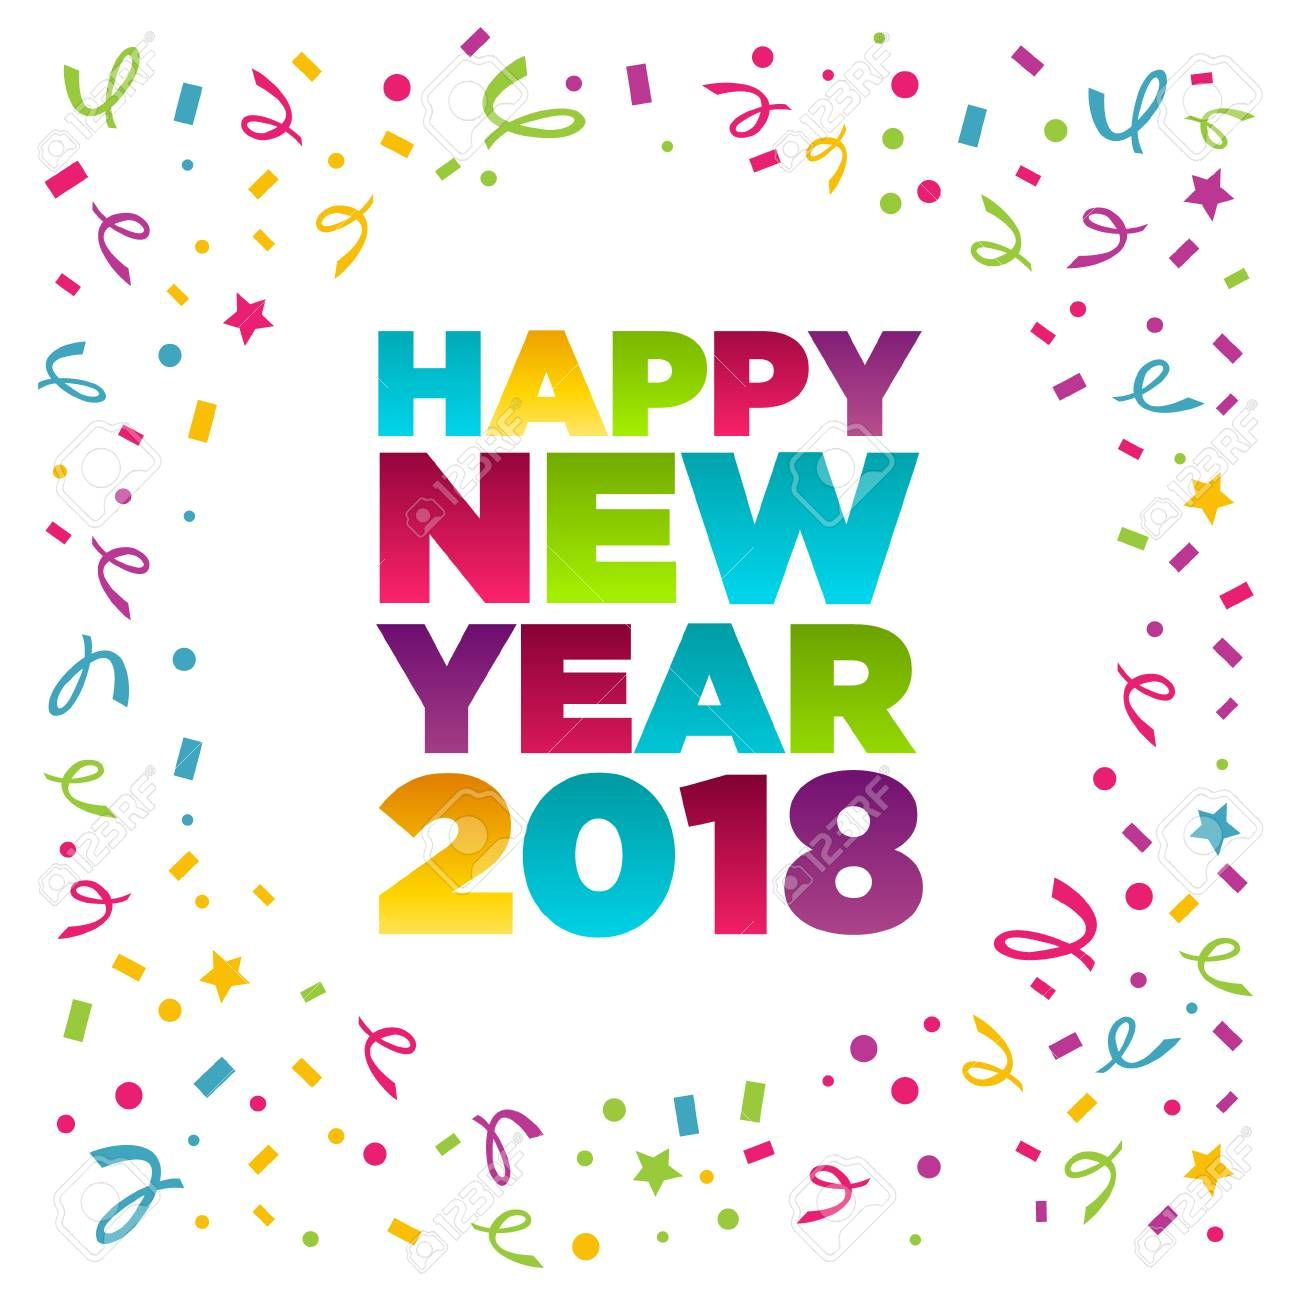 Happy new year 2018 greeting card, vector illustration